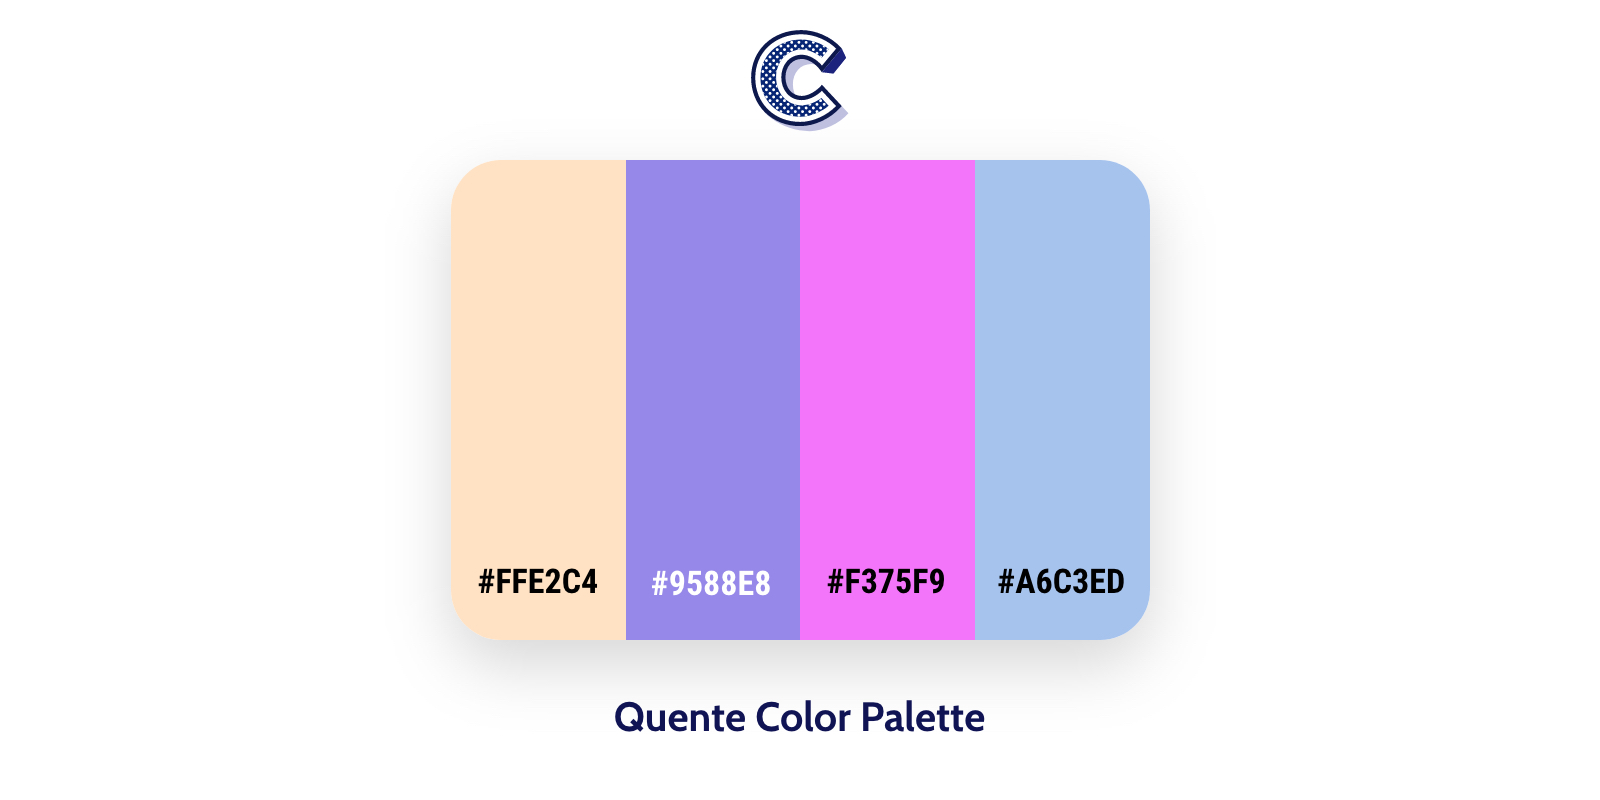 The featured image of quente color palette